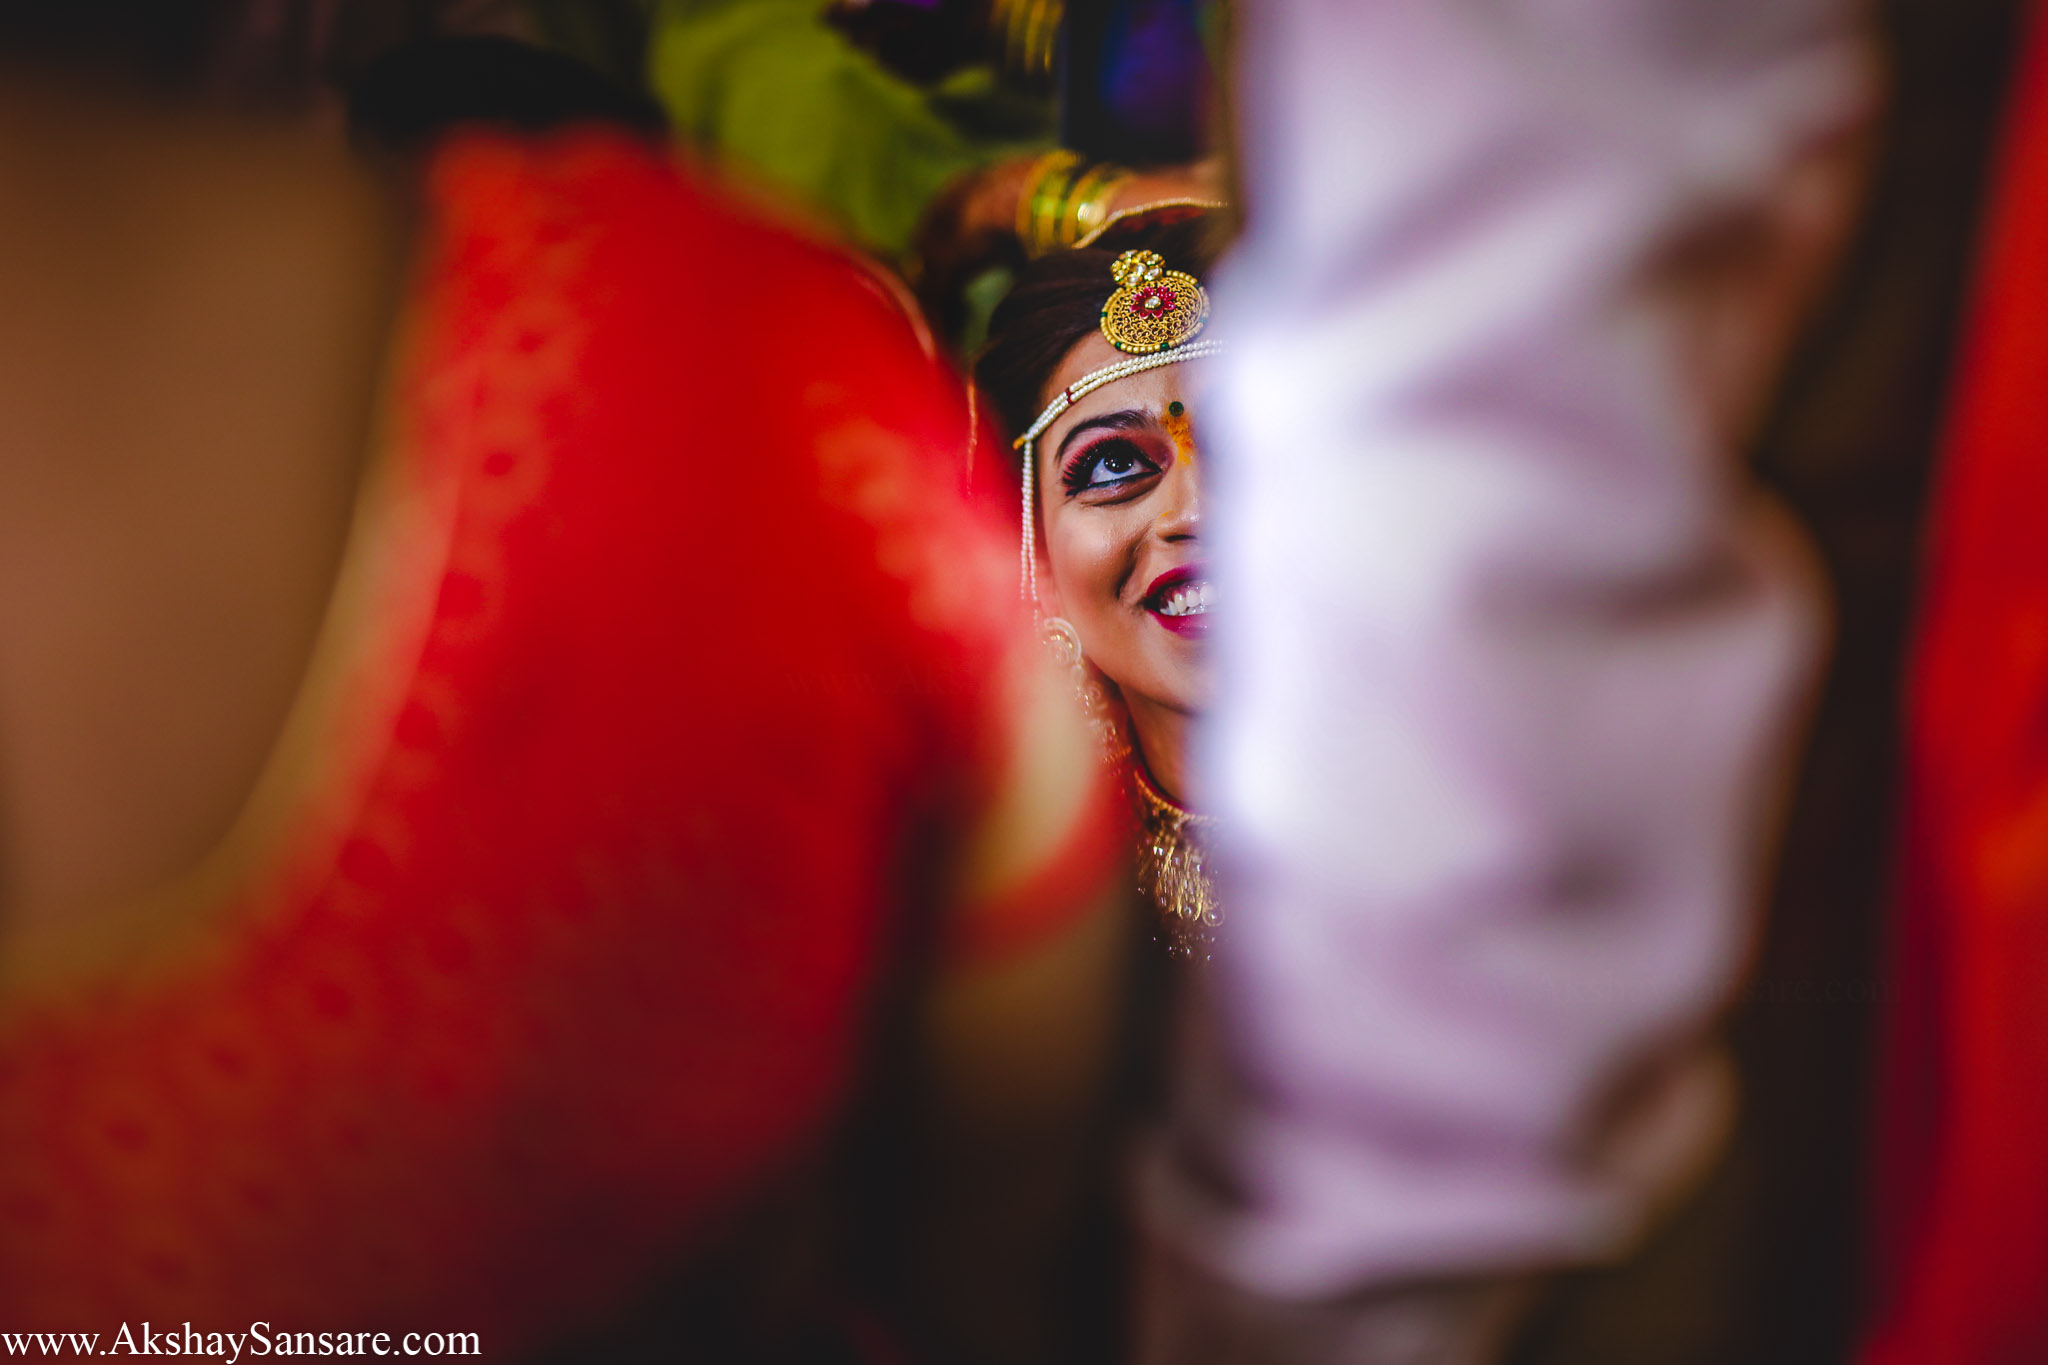 Ajay & Devika Akshay Sansare Photography Best Candid wedding photographer in mumbai india9.jpg